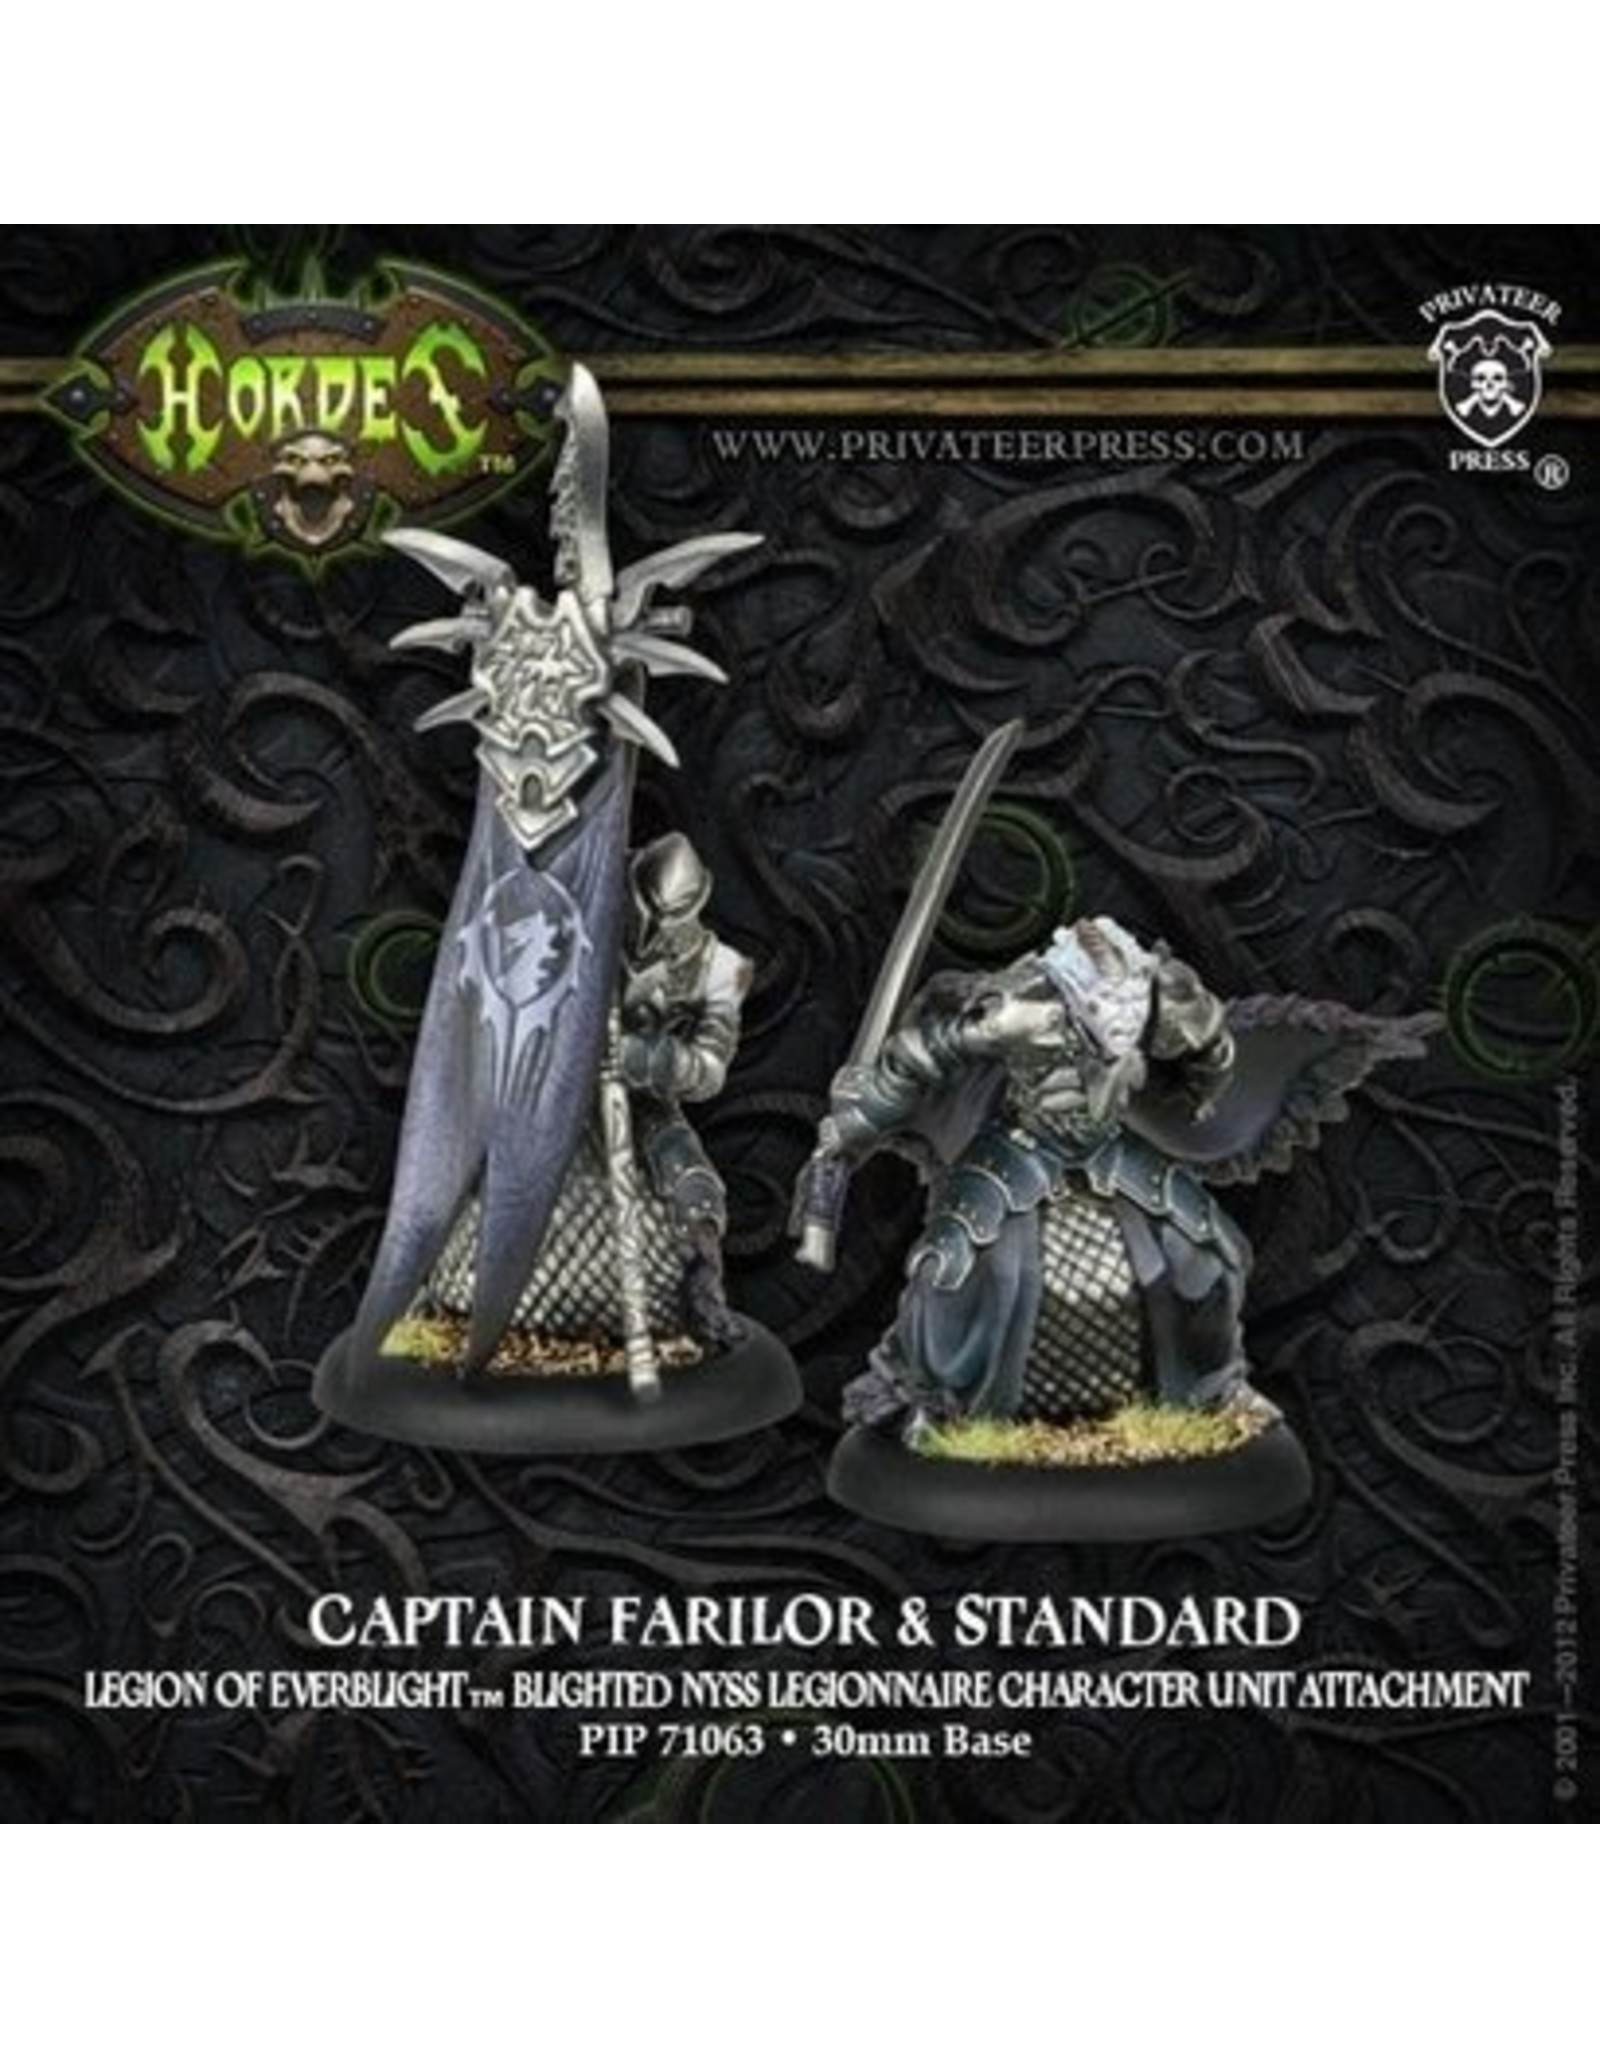 Hordes: Legion of Everblight Captain Farilor and Standard Blighted Nyss Legionnaire Character Unit Attachment (White Metal)